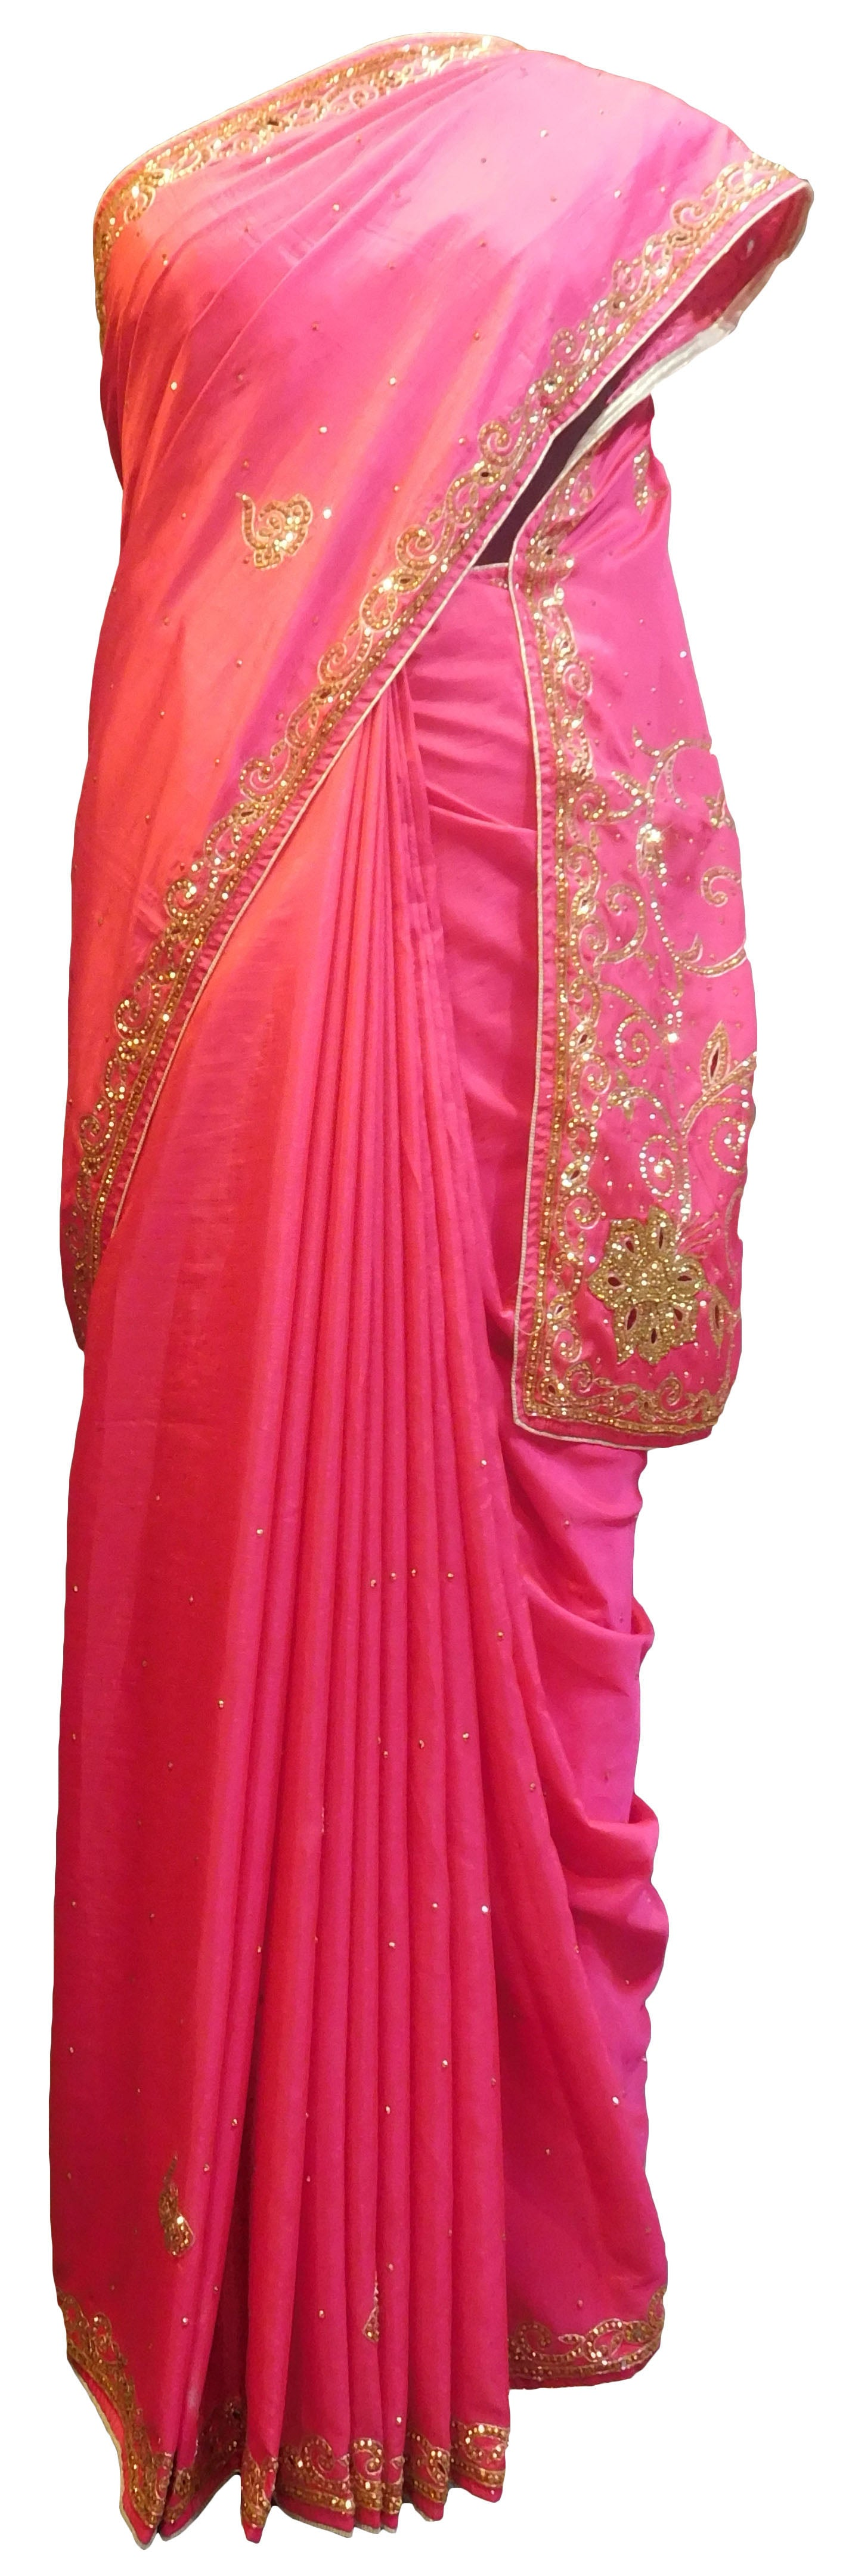 SMSAREE Pink Designer Wedding Partywear Silk Cutdana Zari & Stone Hand Embroidery Work Bridal Saree Sari With Blouse Piece E849